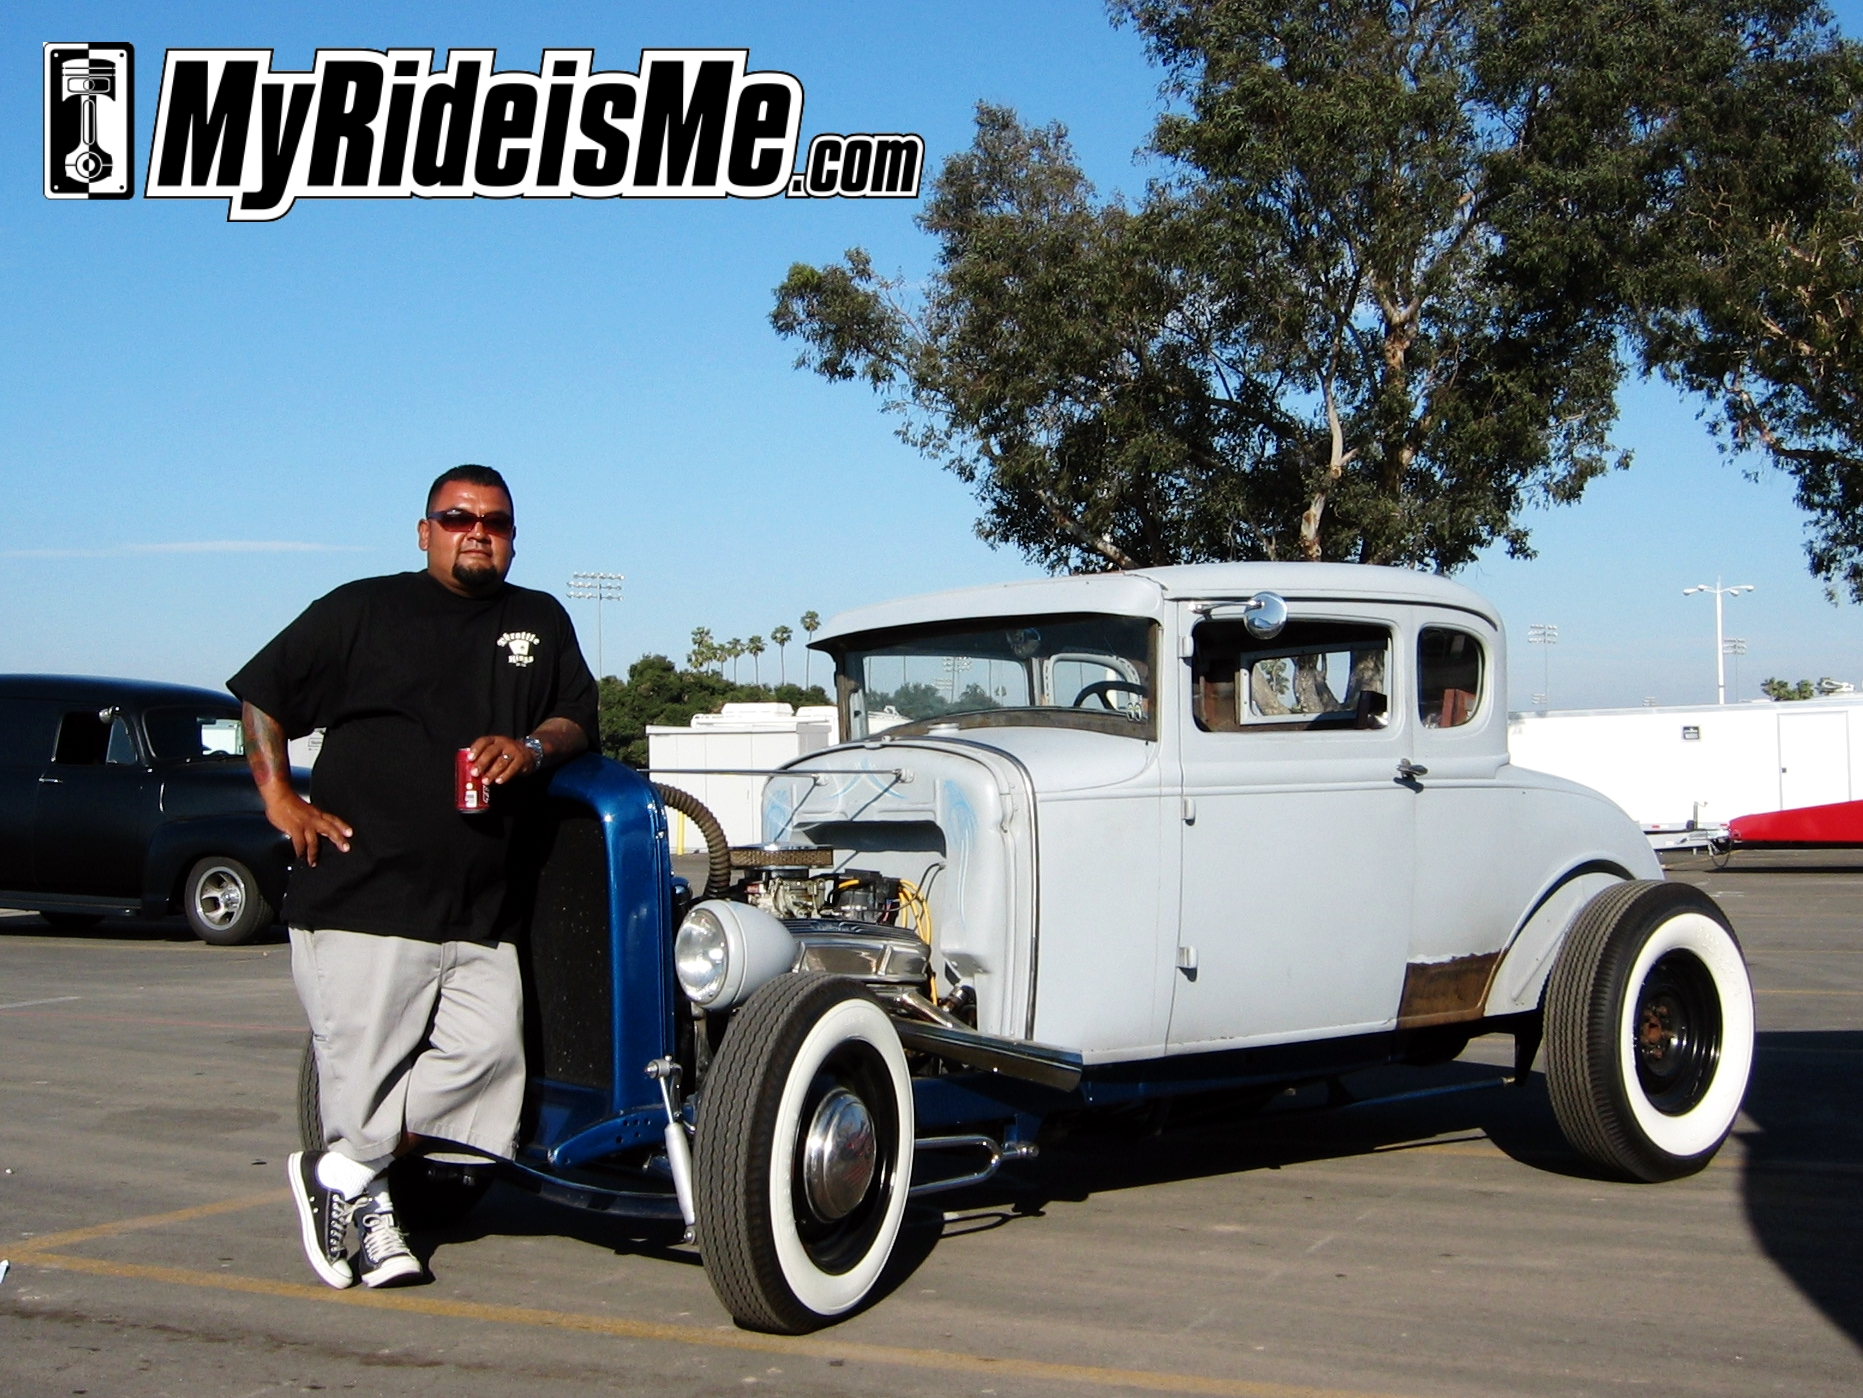 Victor's 30 Ford Coupe Hot Rod